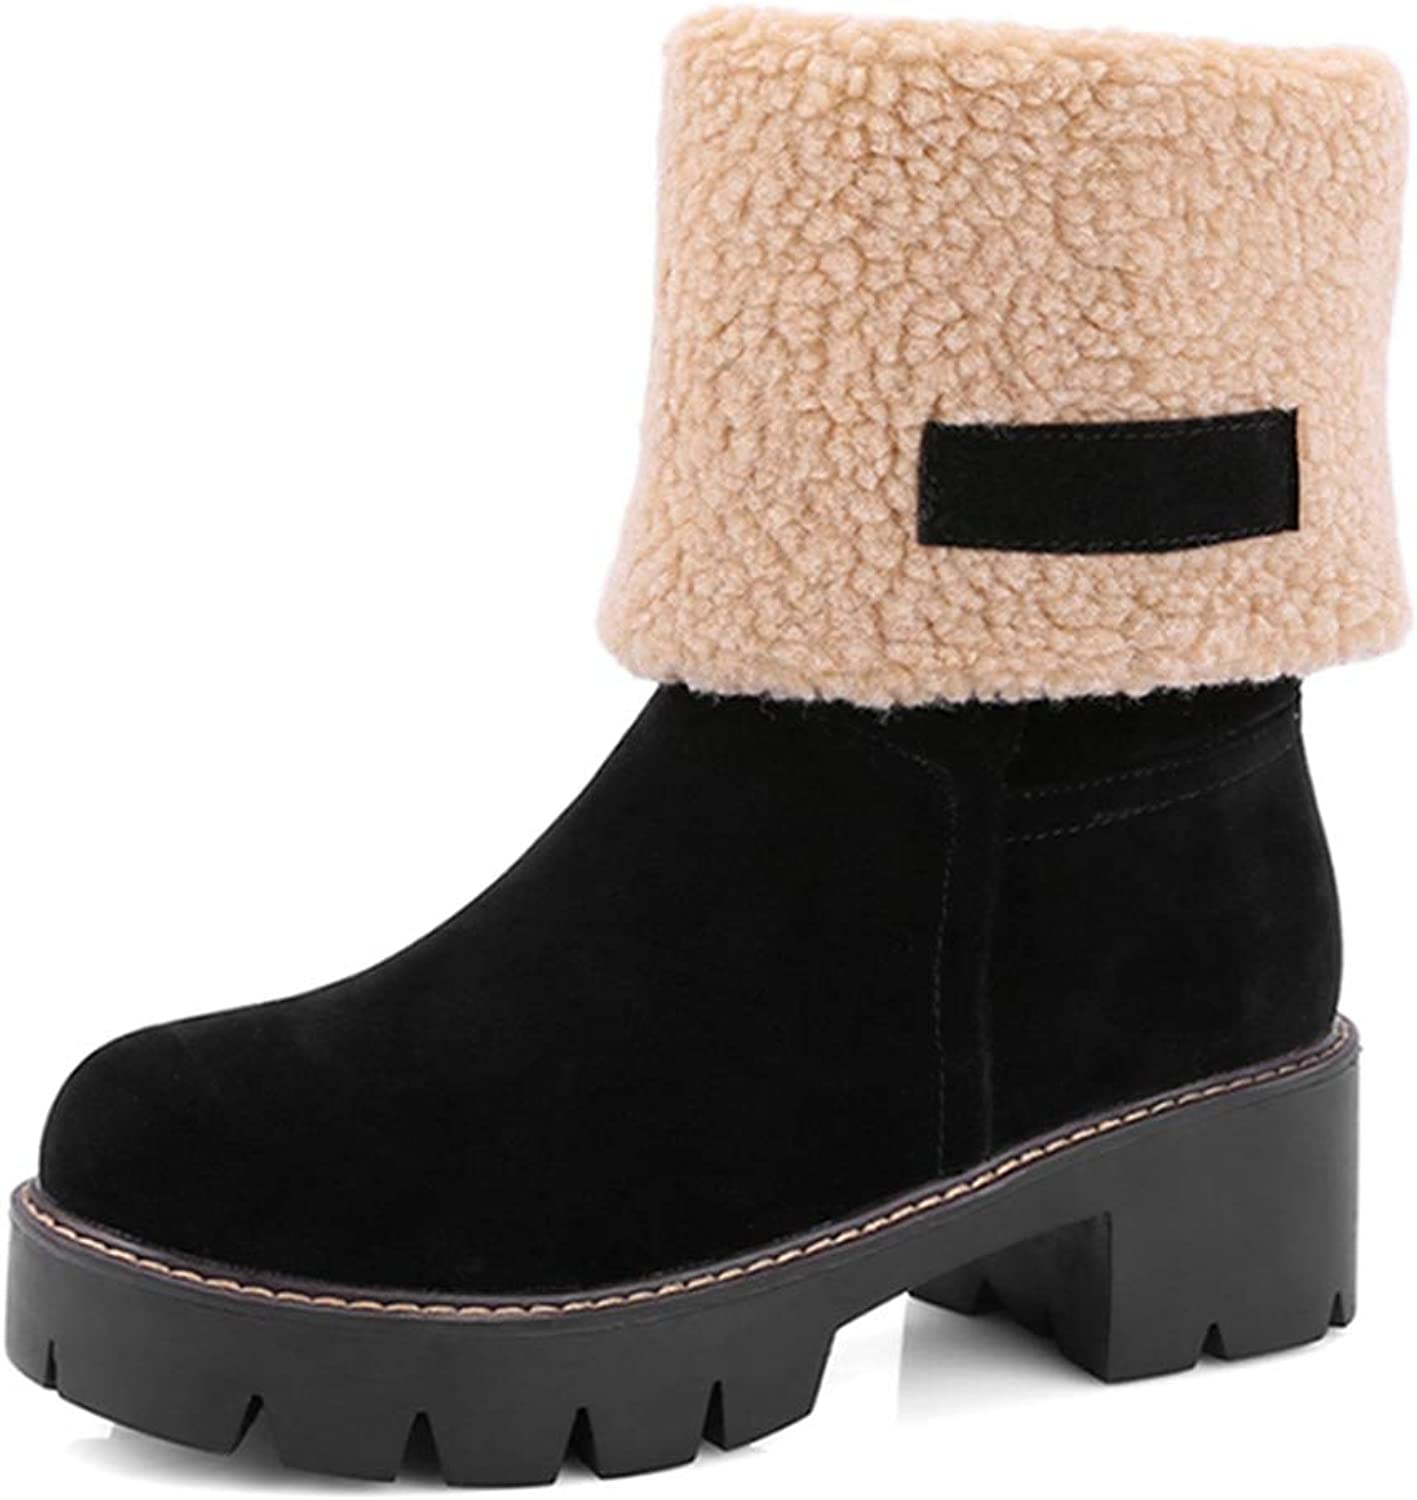 Fay Waters Women's Cute Warm Short Boots Suede Chunky Mid Heel Round Toe Winter Snow Ankle Booties